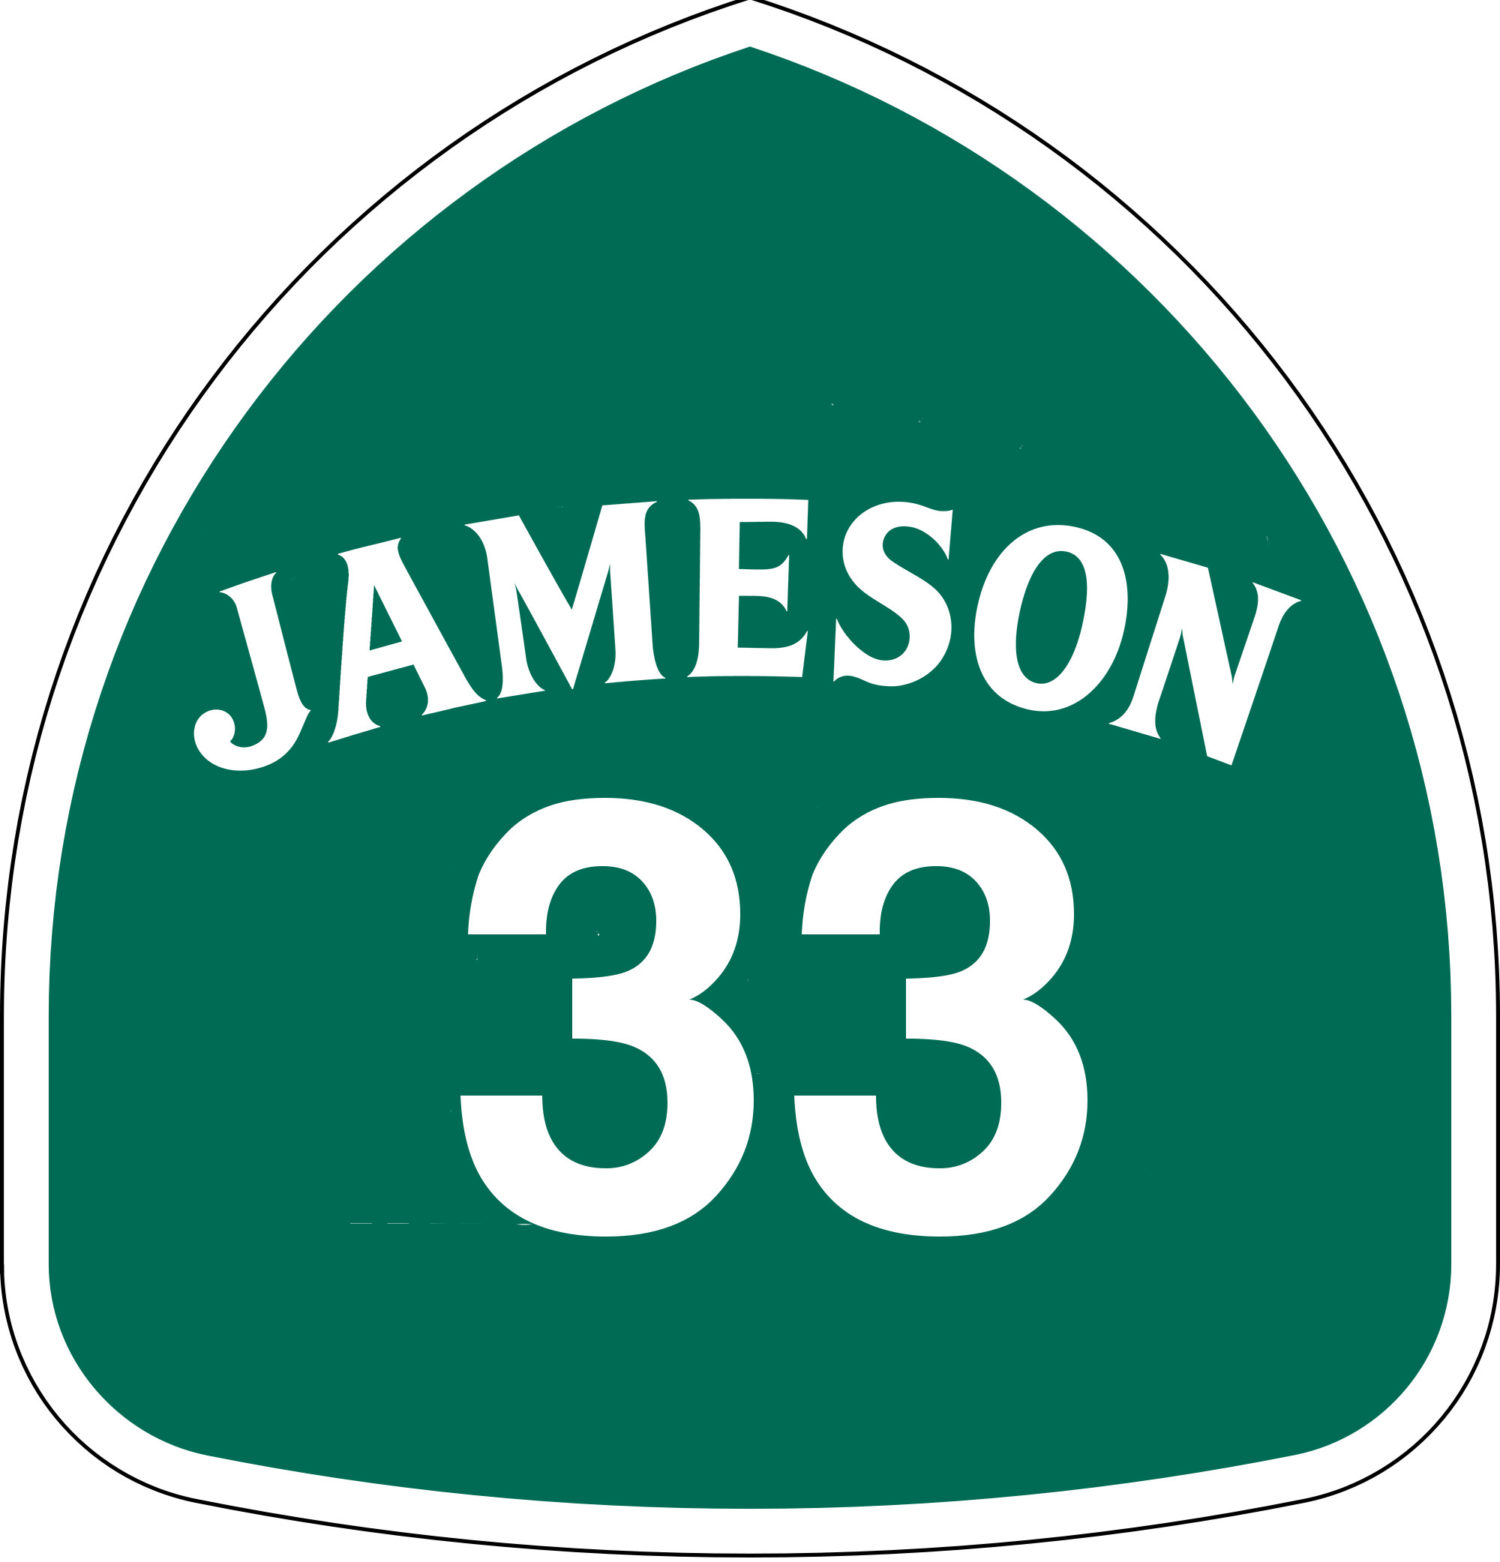 cropped-Jameson-33.jpg